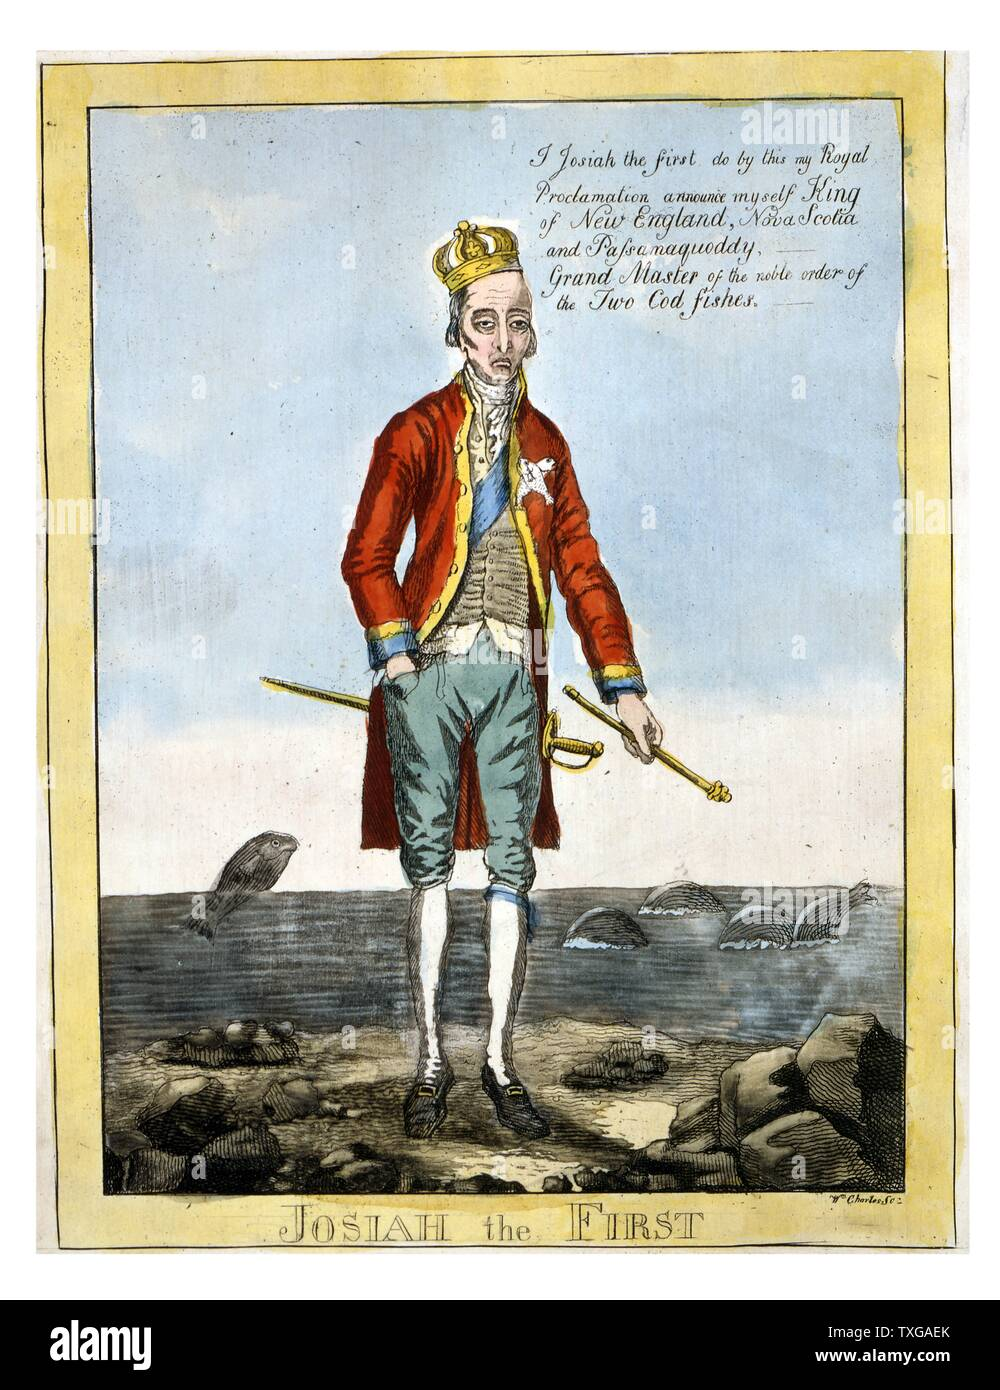 Caricature of wealthy American politician and civic reformer Josiah Quincy, an outspoken apologist for Great Britain and an opponent of the War of 1812. Quincy holds a sceptre in his left hand, and says, I Josiah the first do by this my Royal Proclamation announce myself King of New England, Nova Scotia and Passamaquoddy, -- Grand Master of the noble order of the Two Cod Fishes. - Stock Image